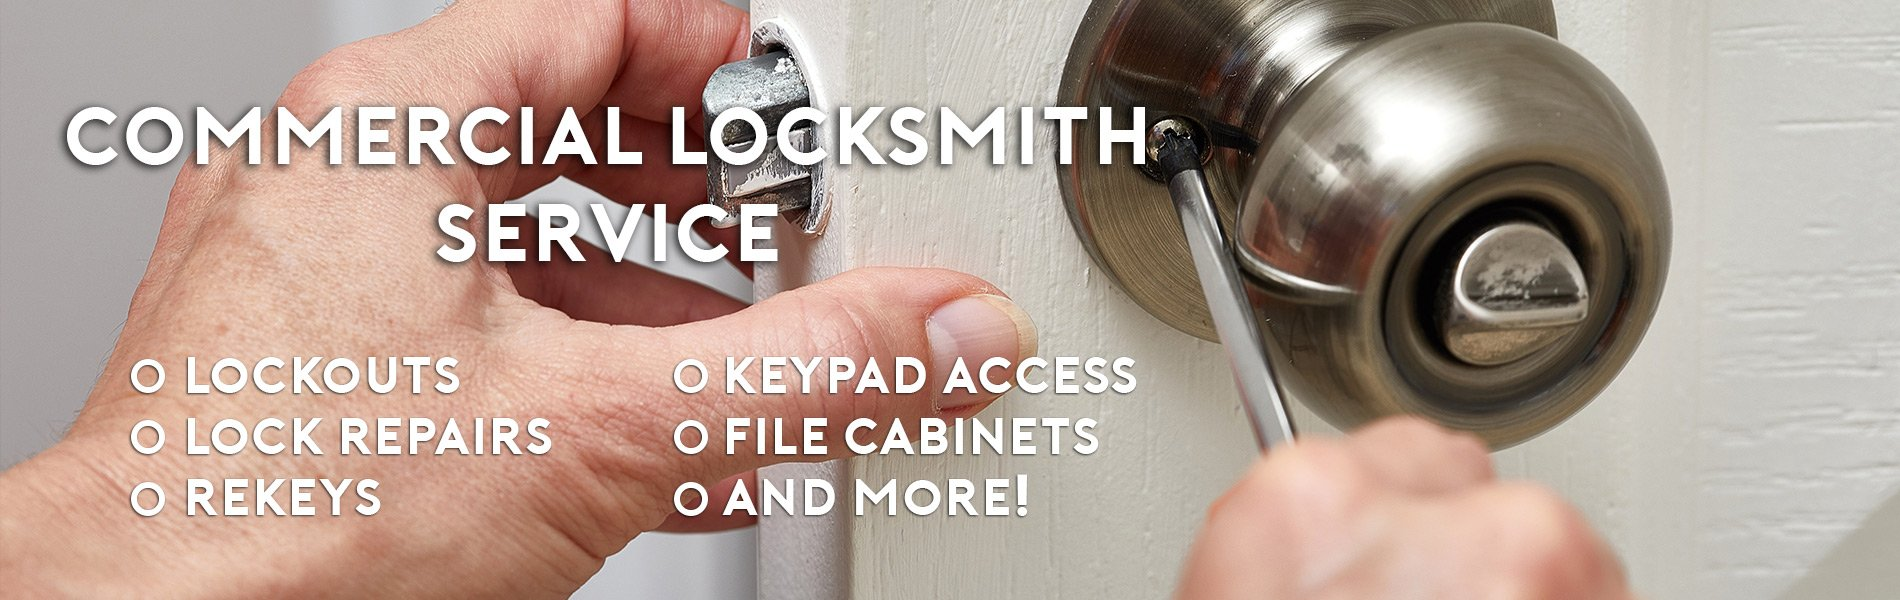 City Locksmith Shop Bedminster, NJ 908-617-3171